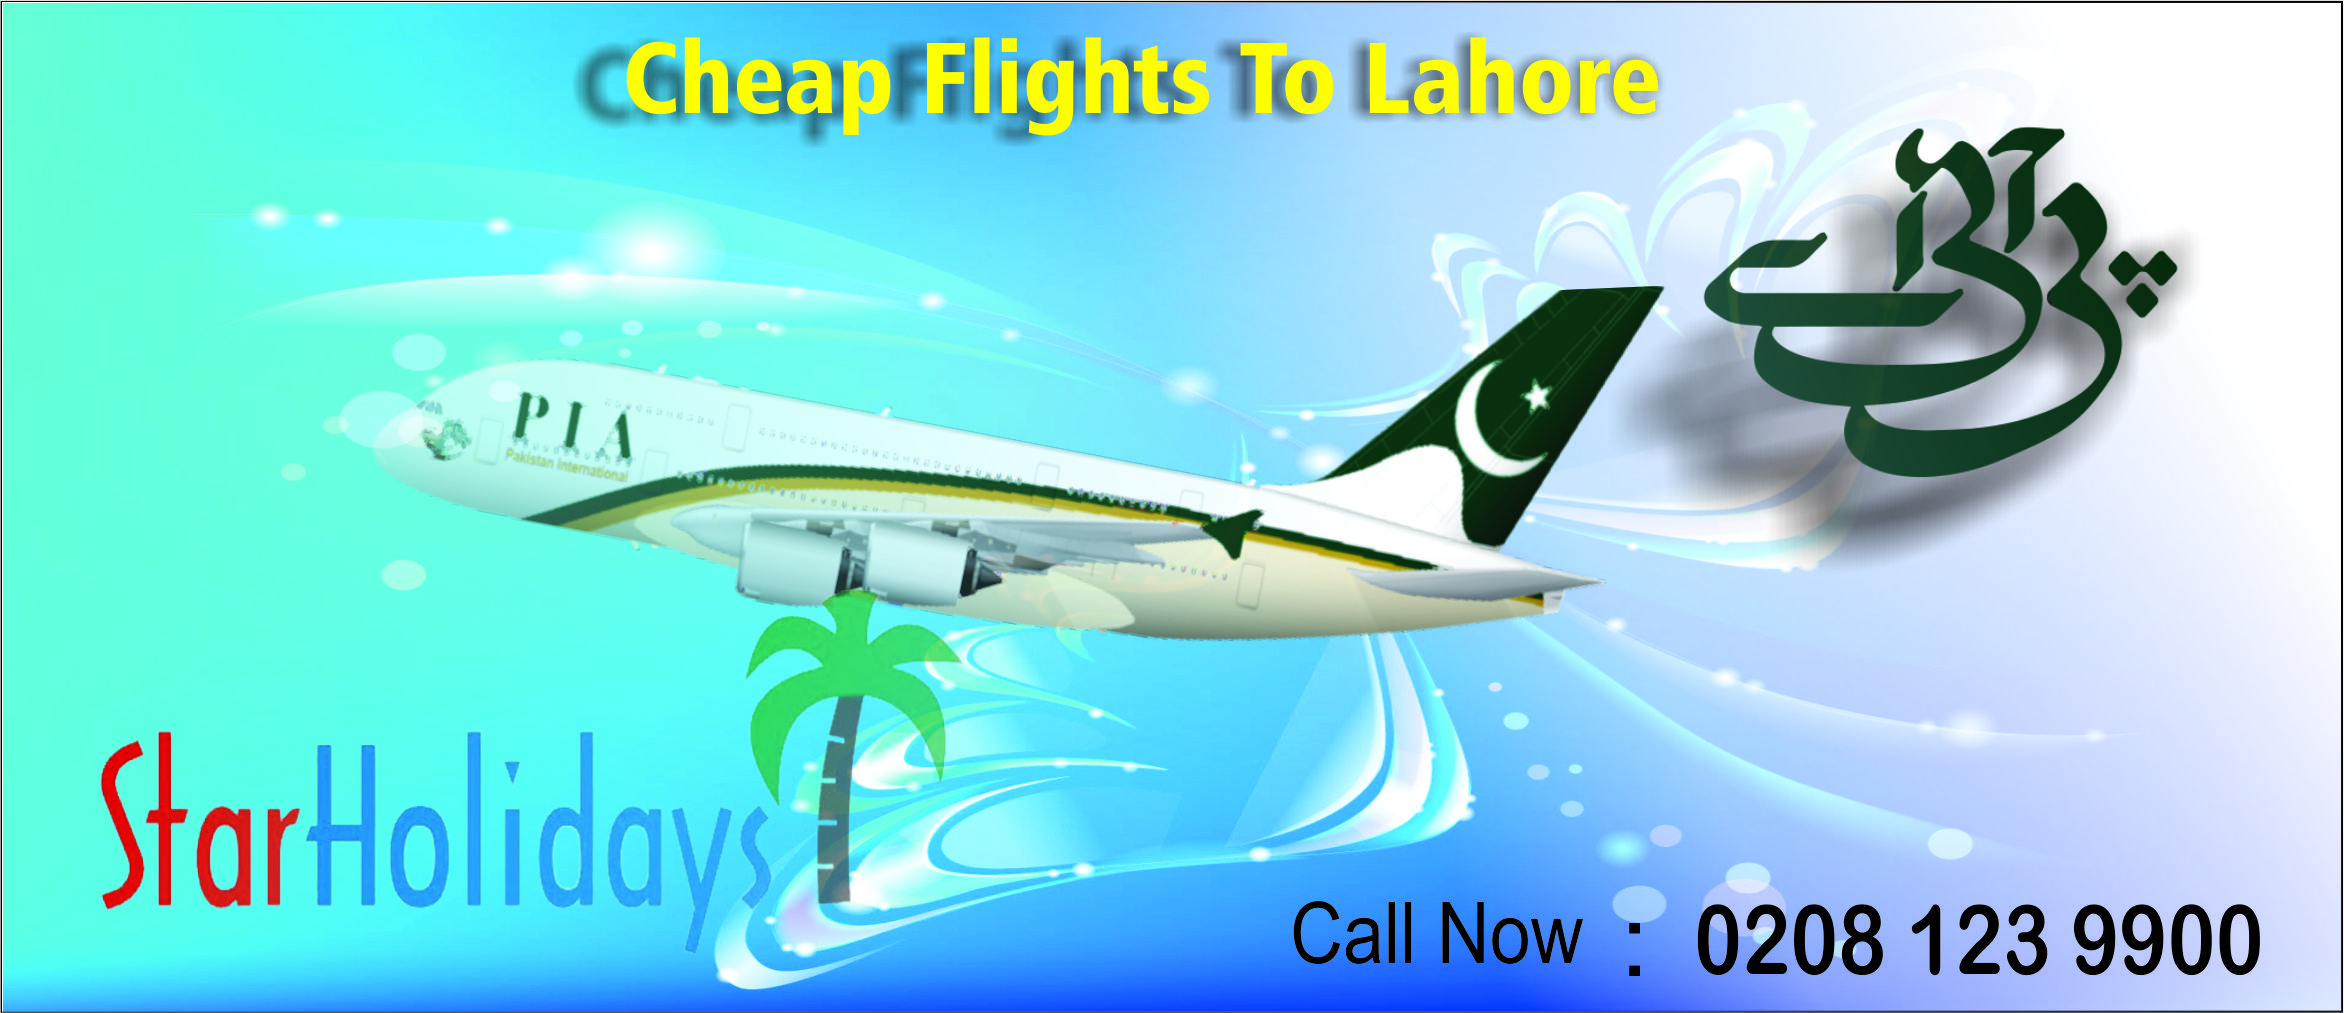 Cheap PIA Flights to Lahore - Cheap PIA Tickets - Book